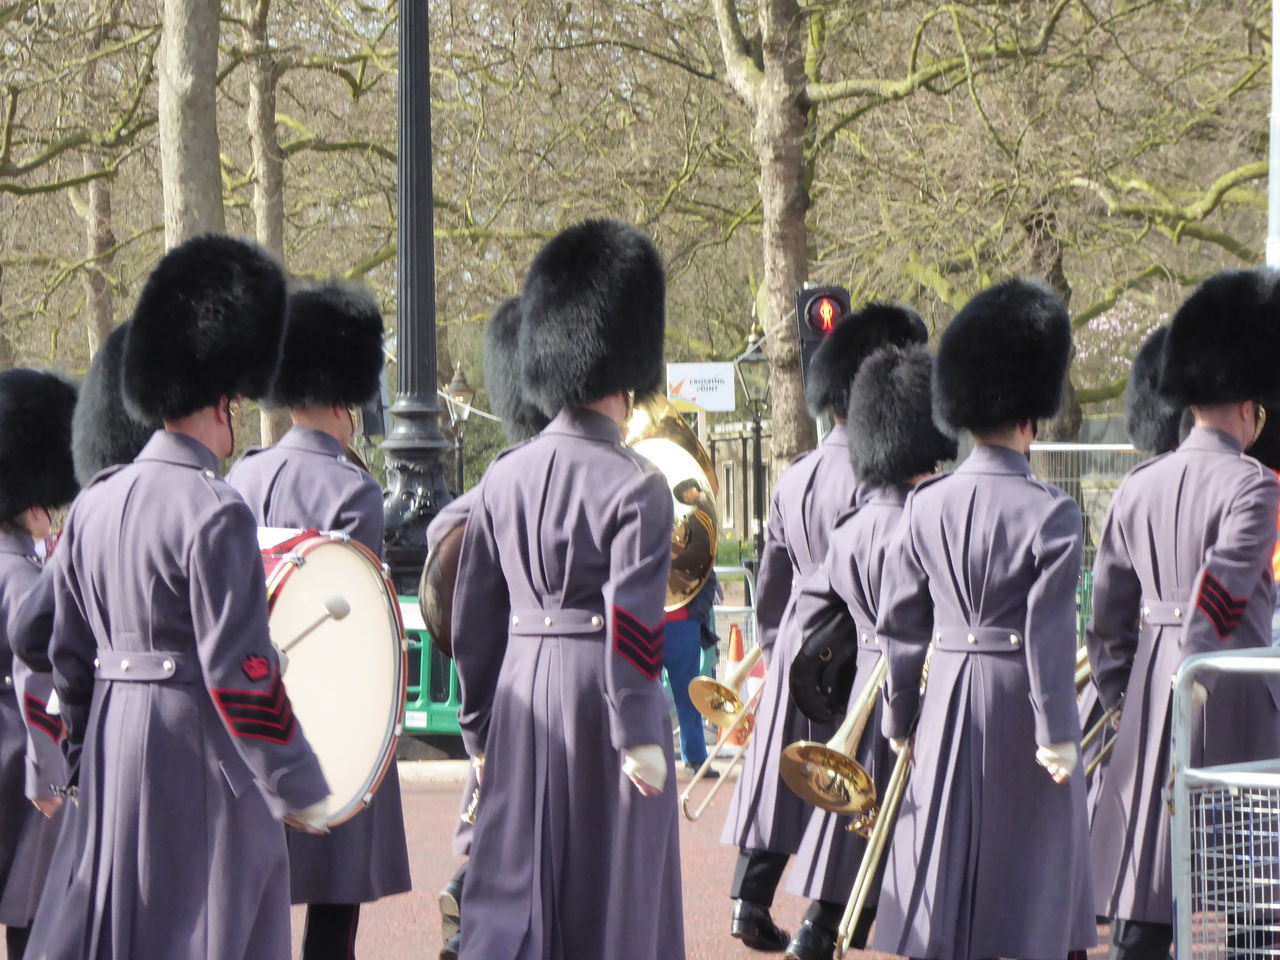 EyeEm LOST IN London Queens Soldiers Quens Gaurds Rear View St James Palace Togetherness Traditional Clothing Uniform